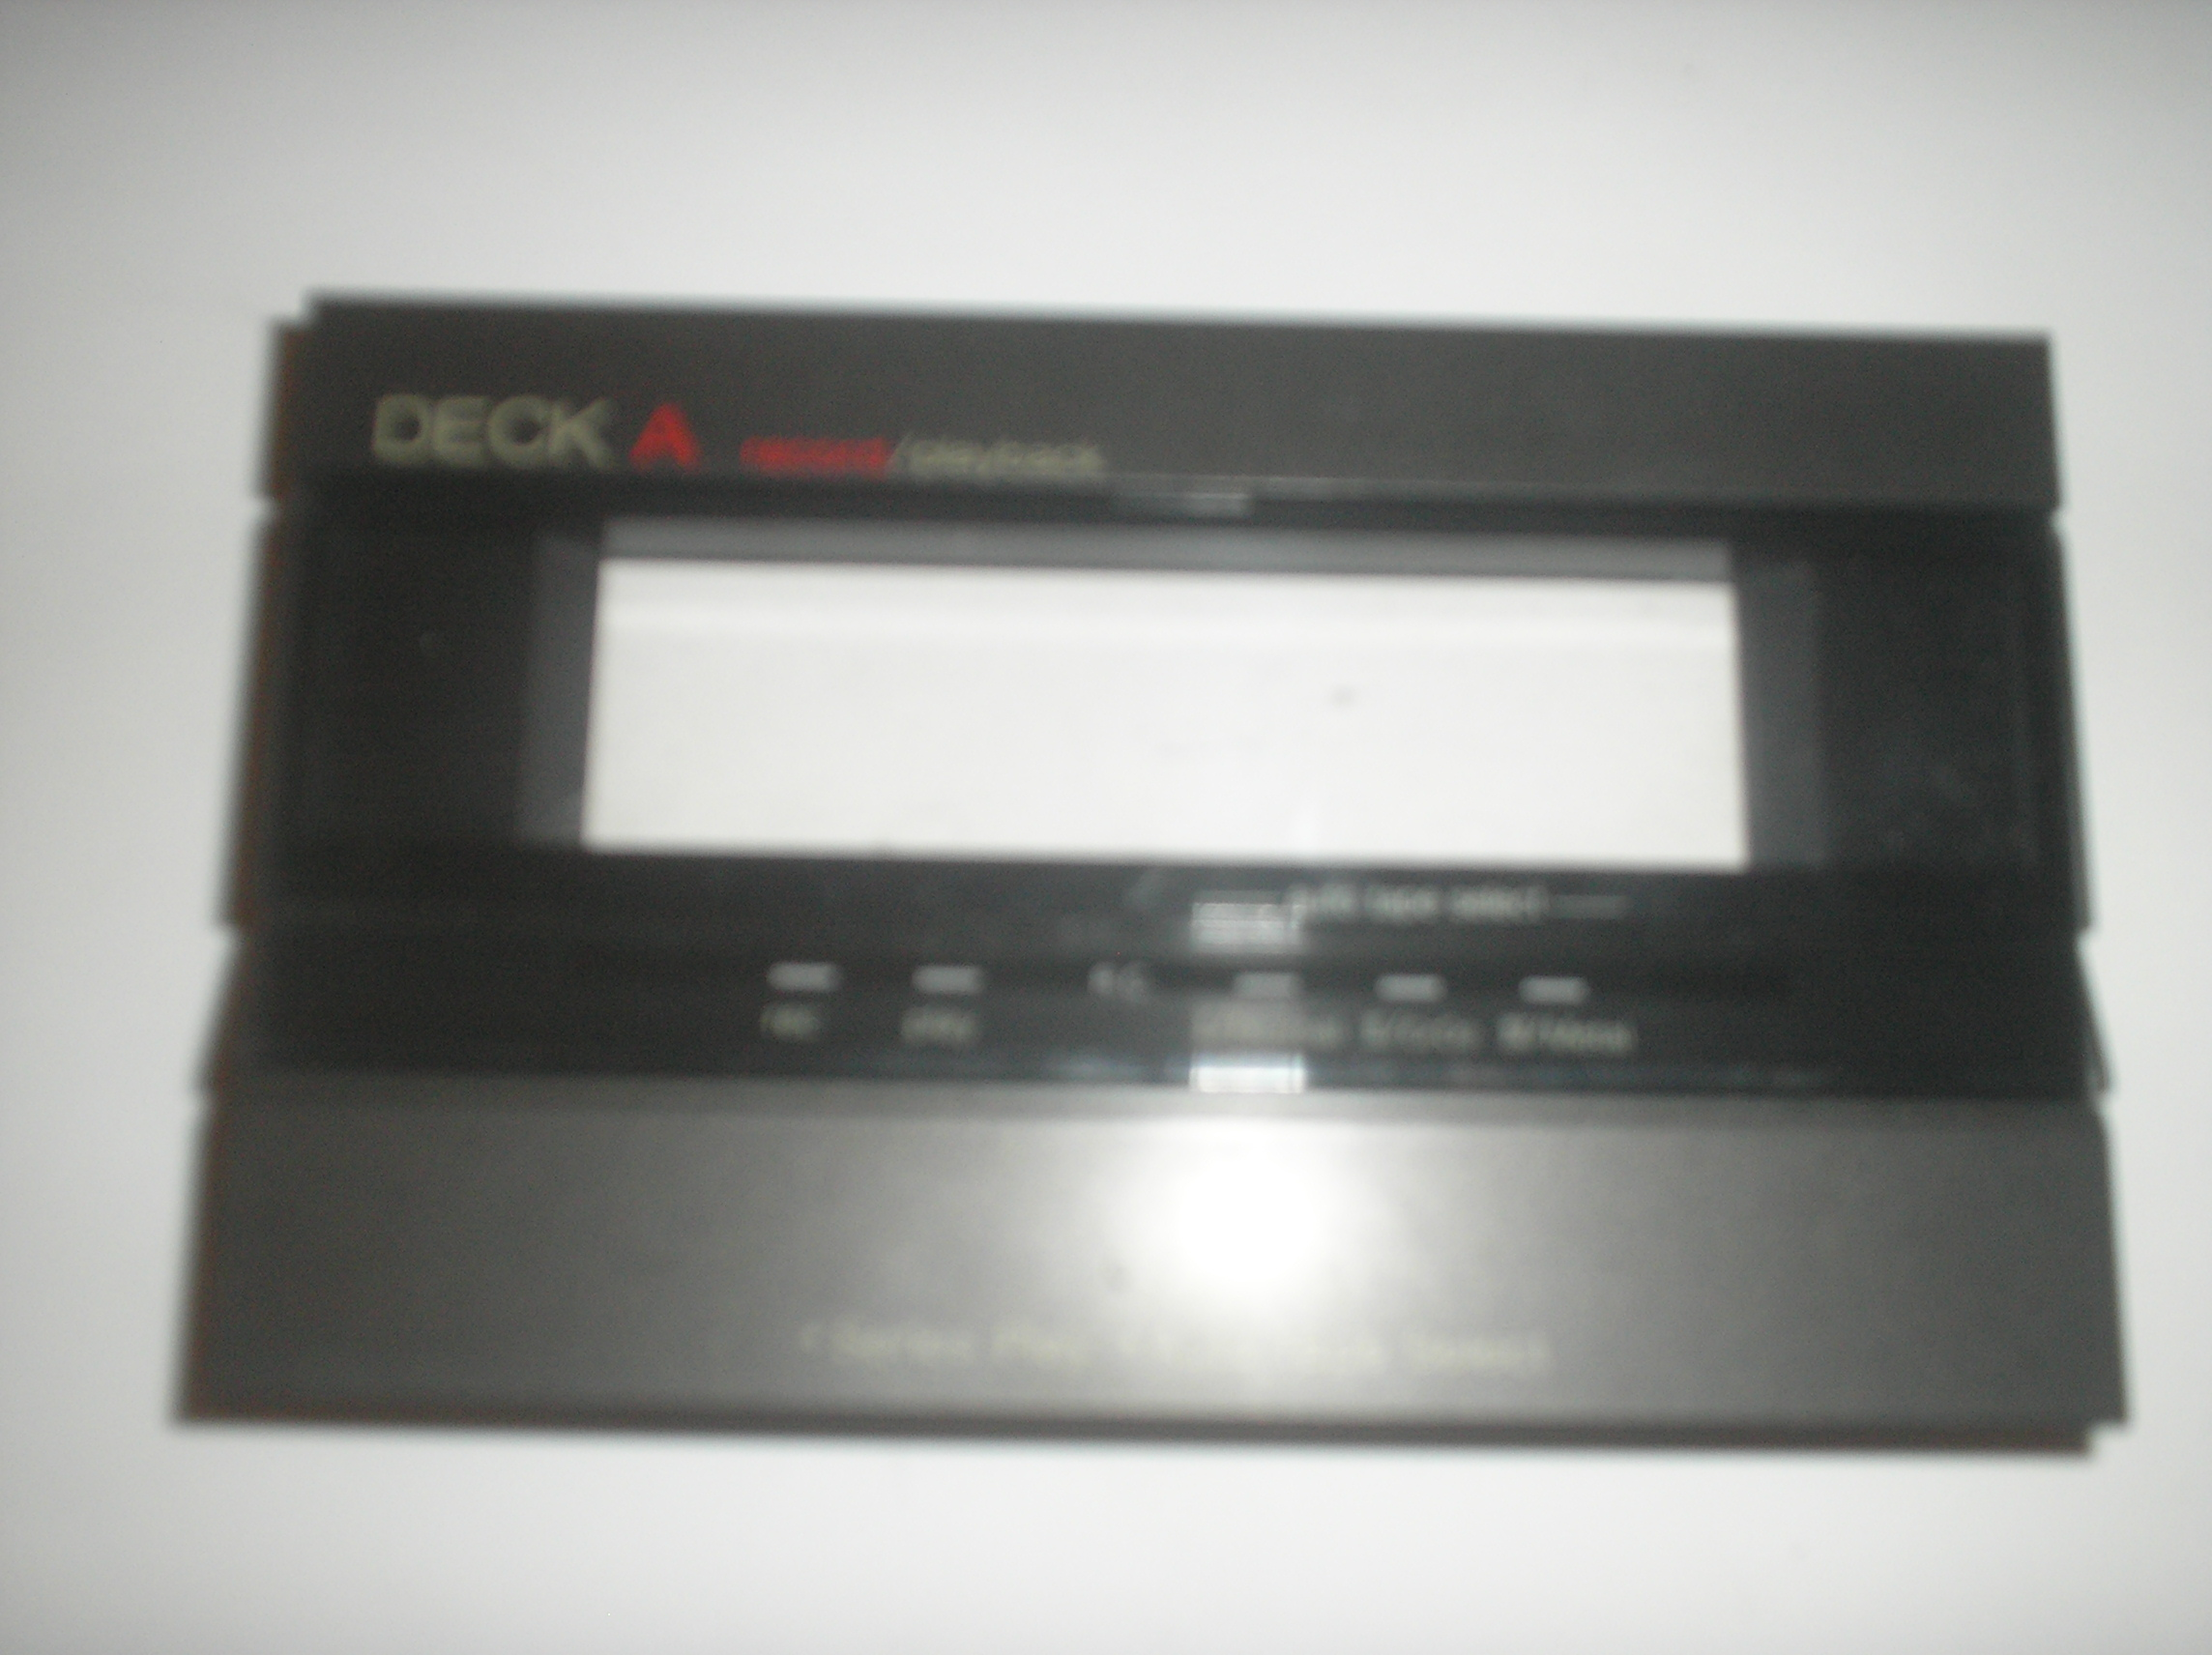 RS-T230 Cassette Deck A Door Assy.  item is used.  Part Number SGE1911